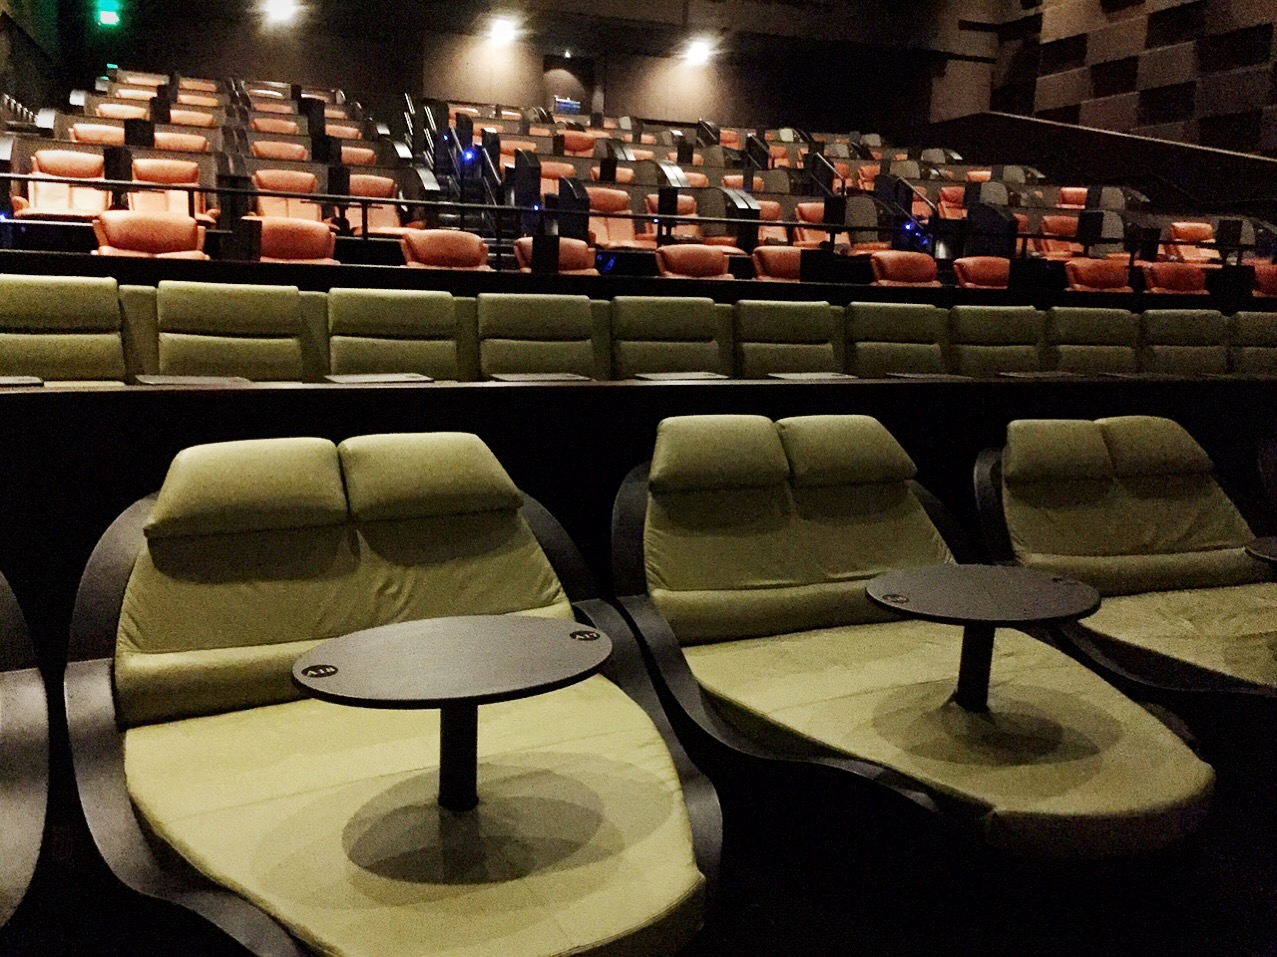 sofa theater pasadena how to remove a pen mark from leather movie lounge chairs ipic theaters the